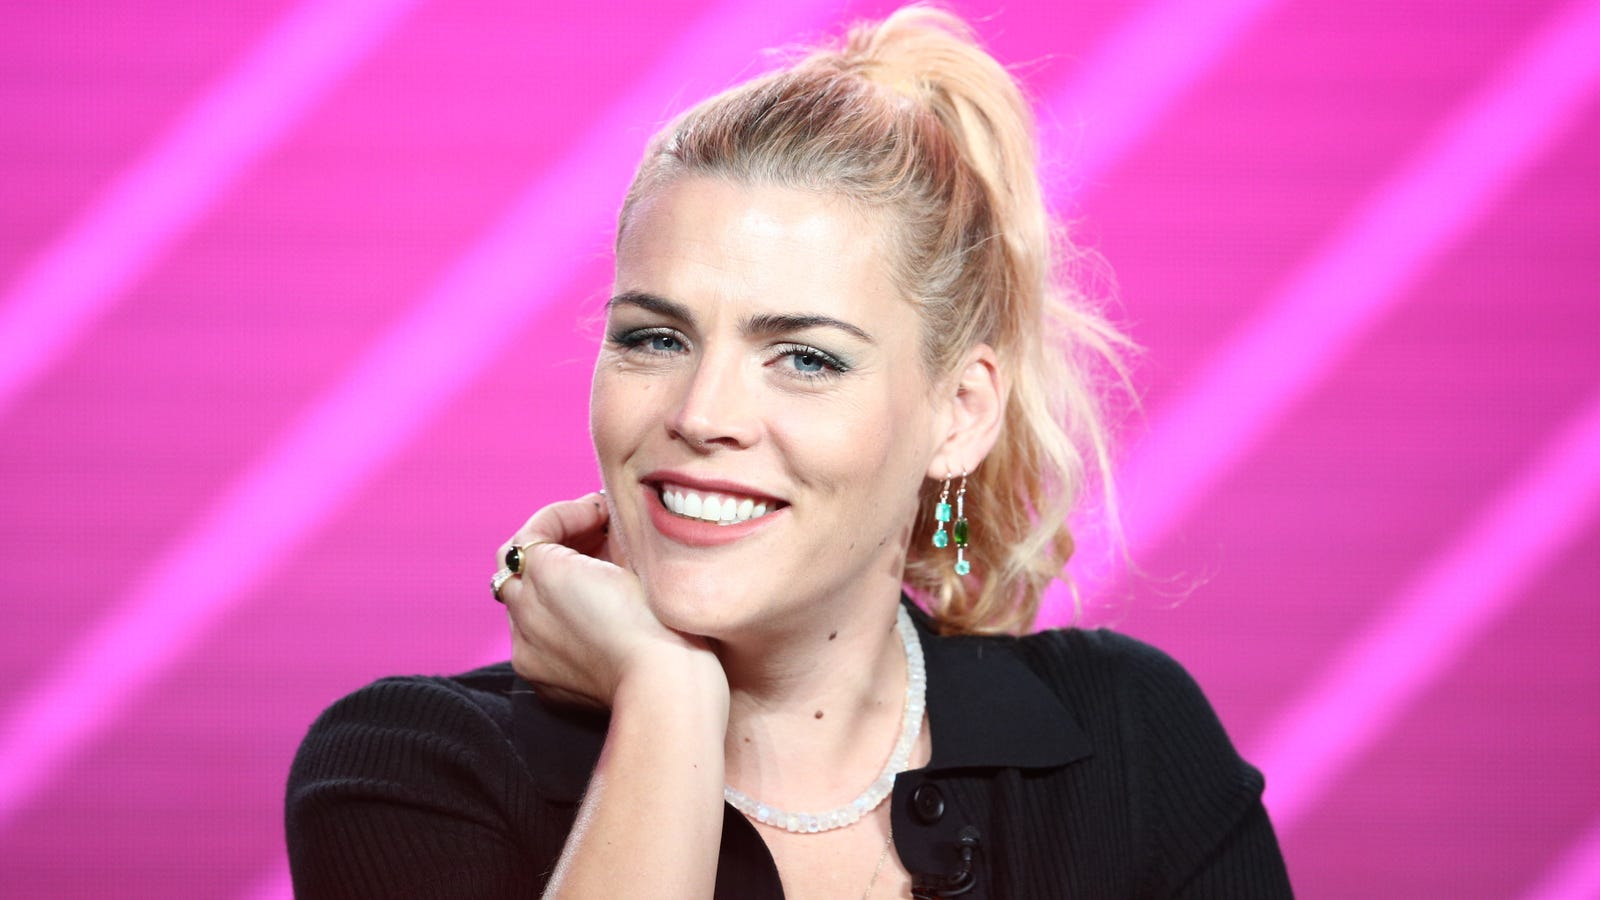 E! is dropping Busy Philipps' late-night show Busy Tonight